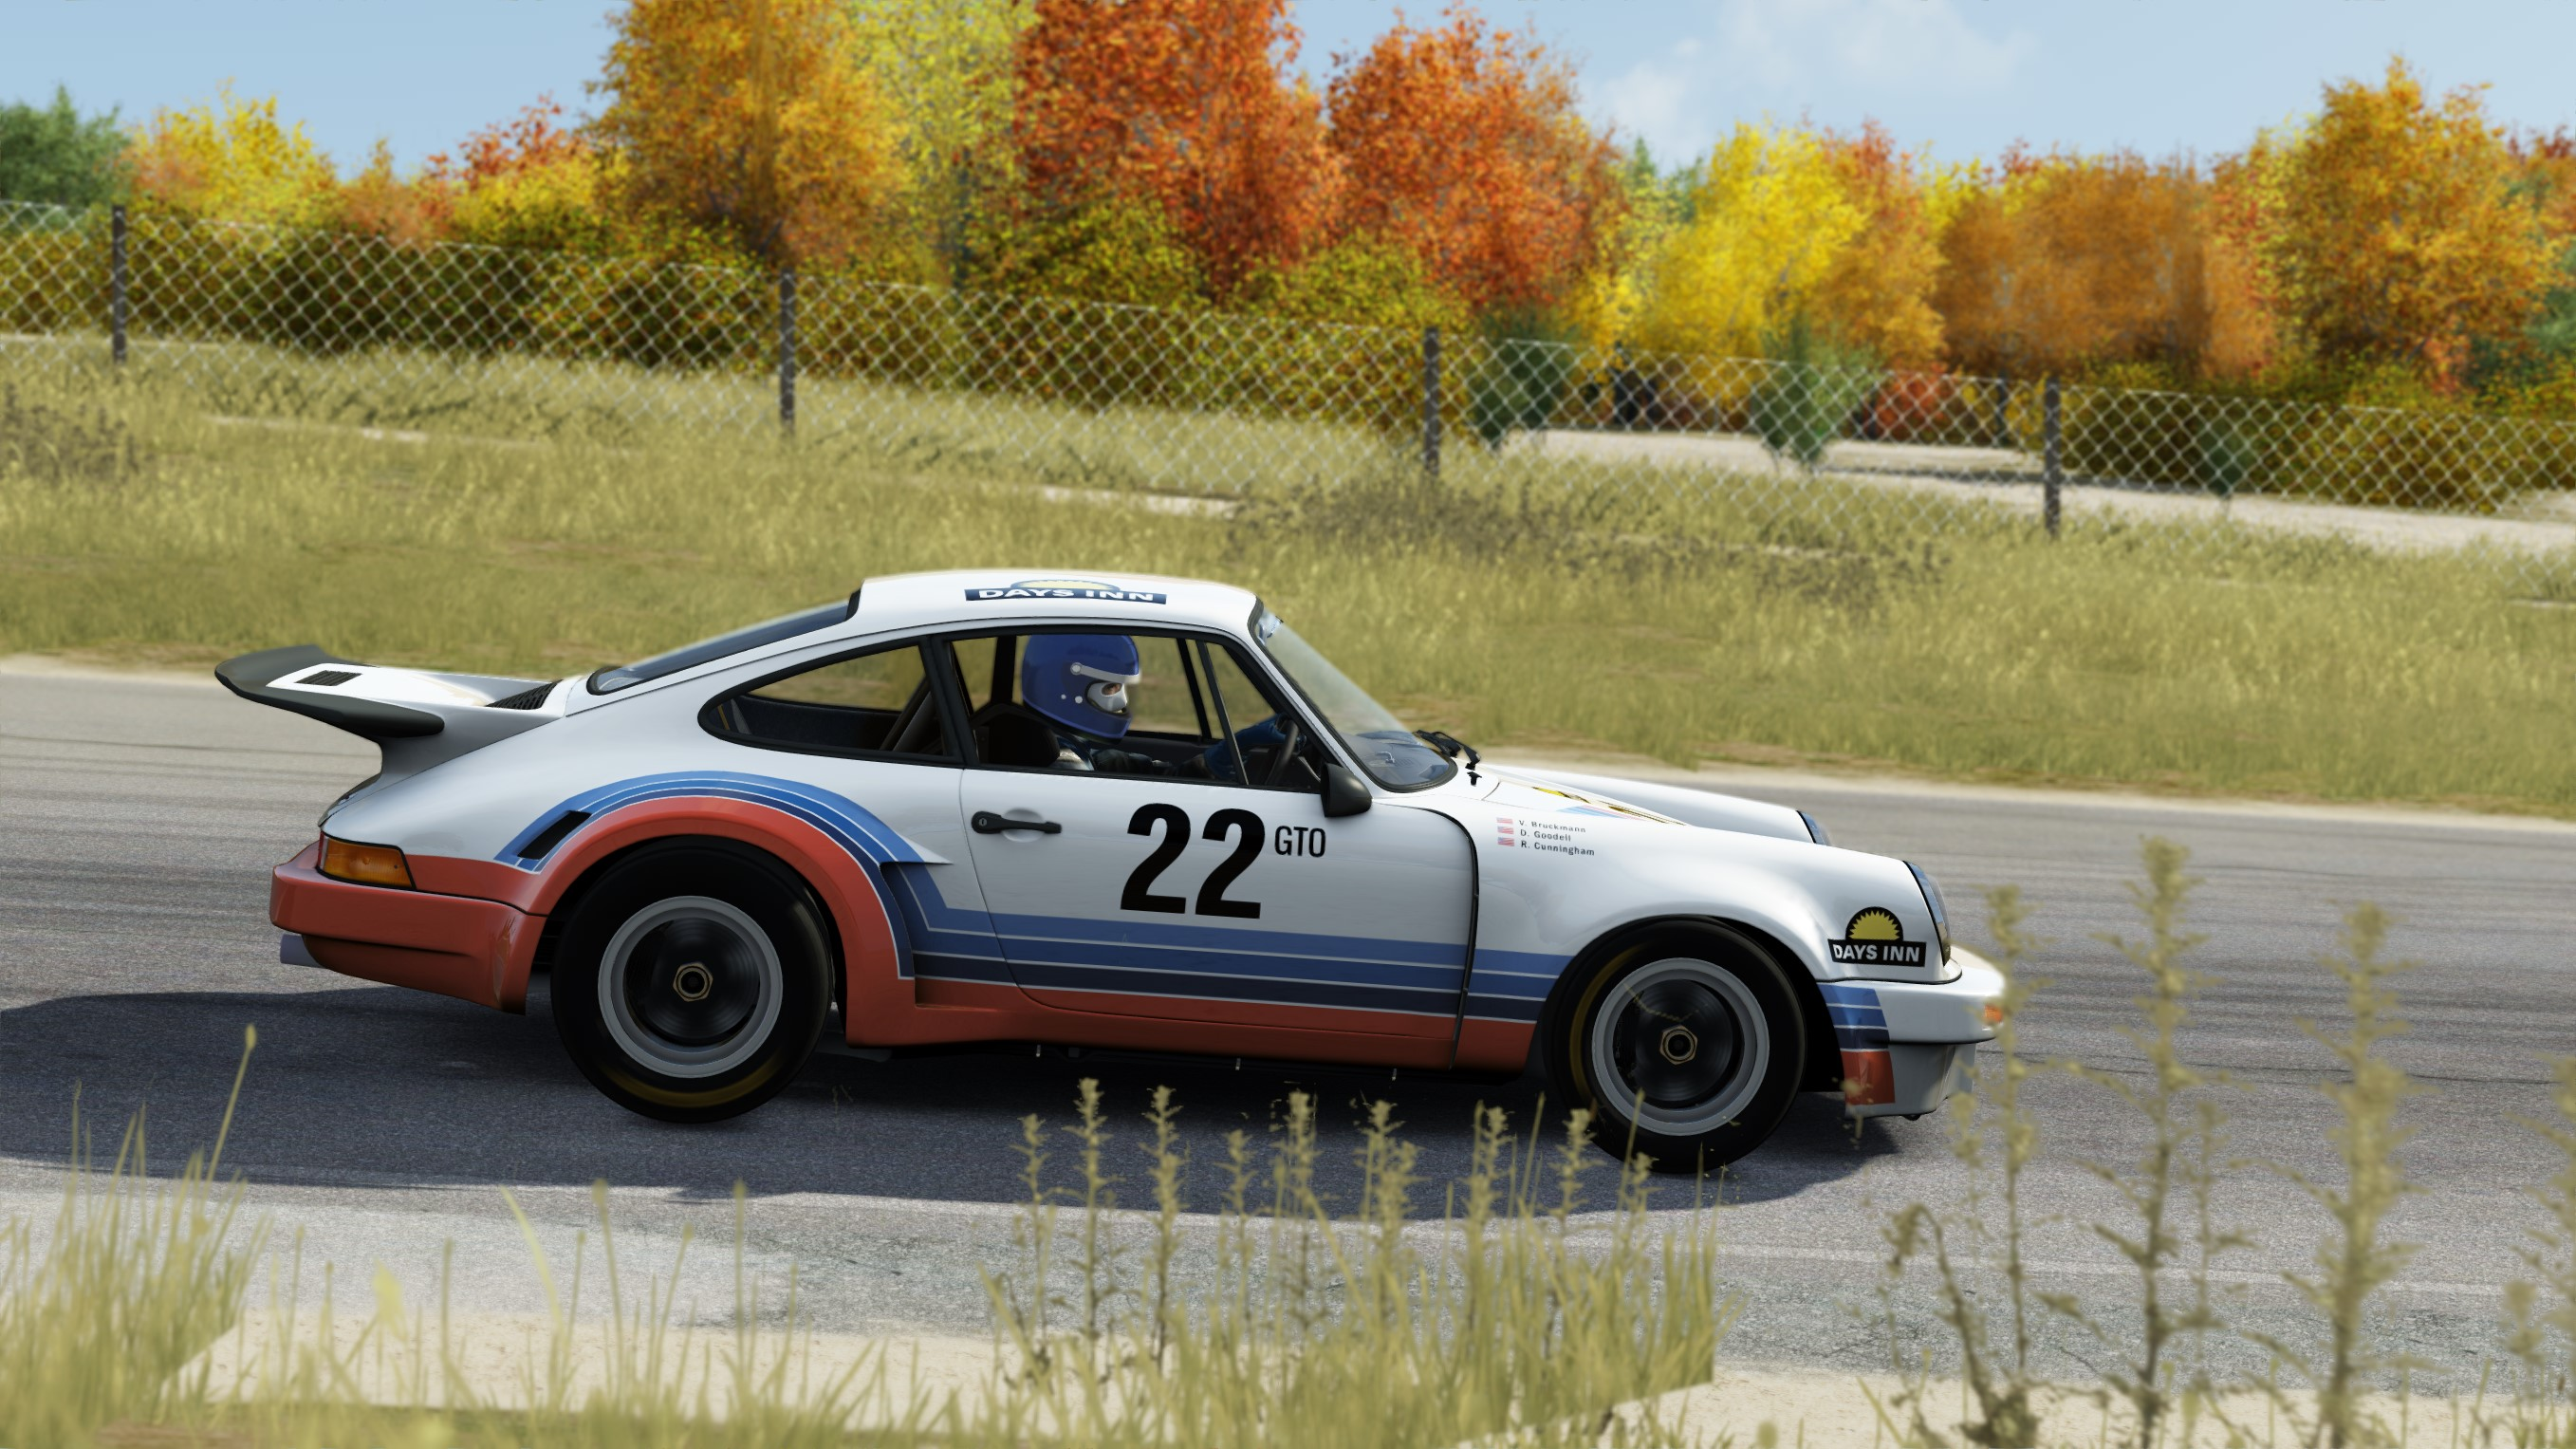 Screenshot_ks_porsche_911_carrera_rsr_bridgehampton_16-12-116-15-27-43.jpg